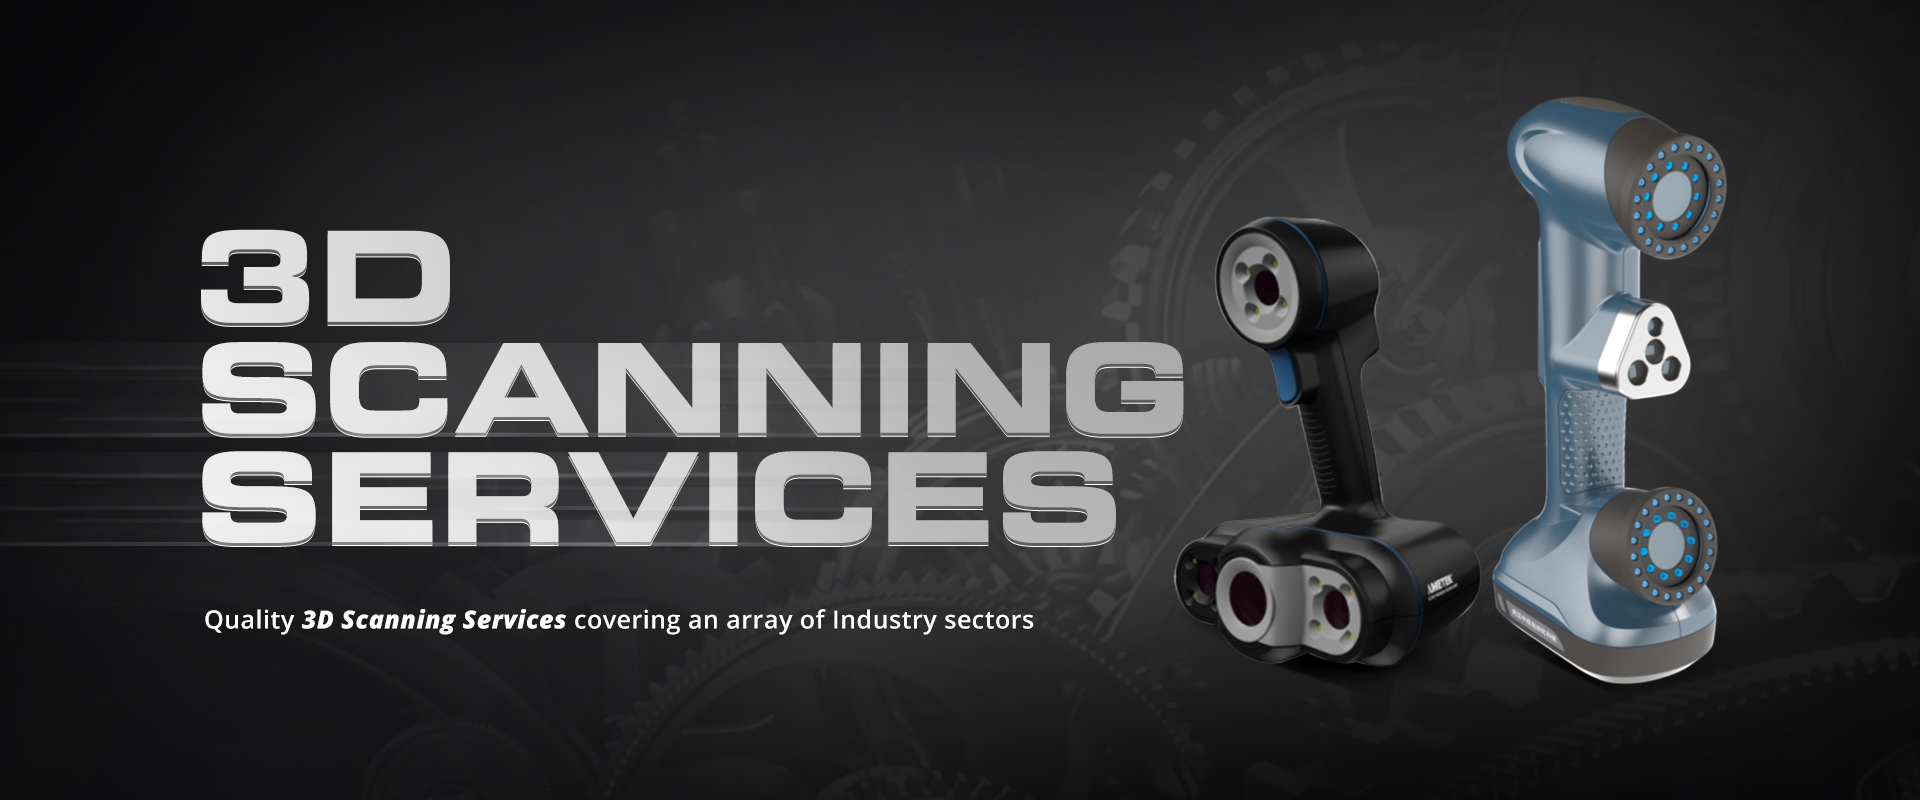 3D Scanning Solutions